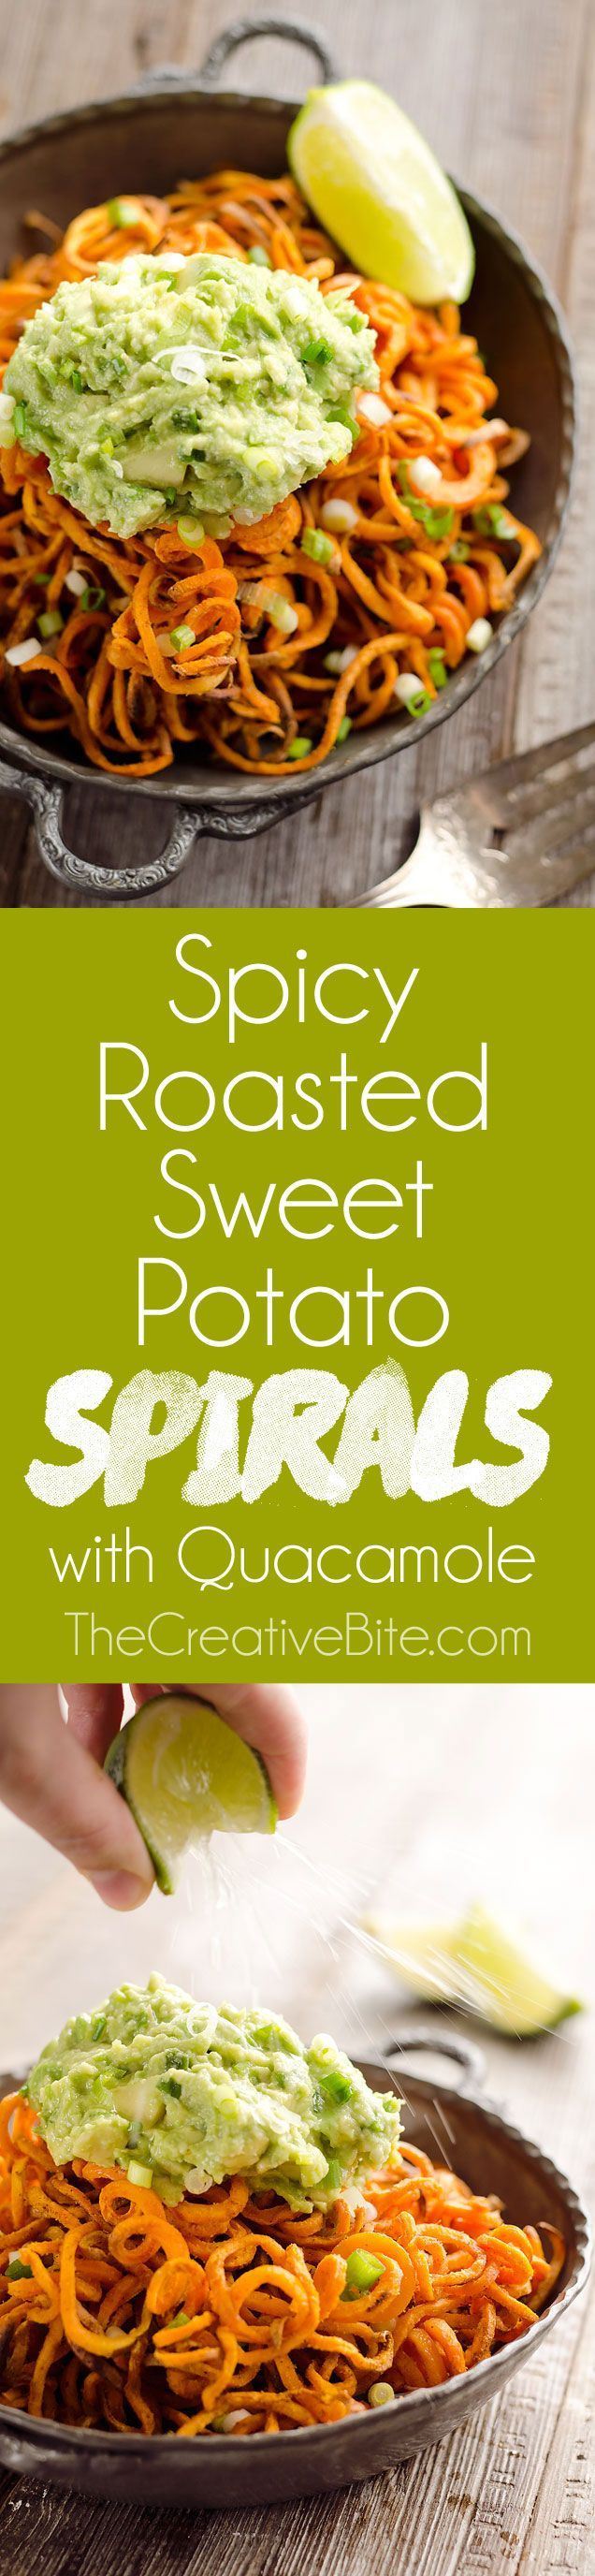 Spicy Roasted Sweet Potato Spirals with Guacamole   This veggie noodle dish looks simple and delicious.